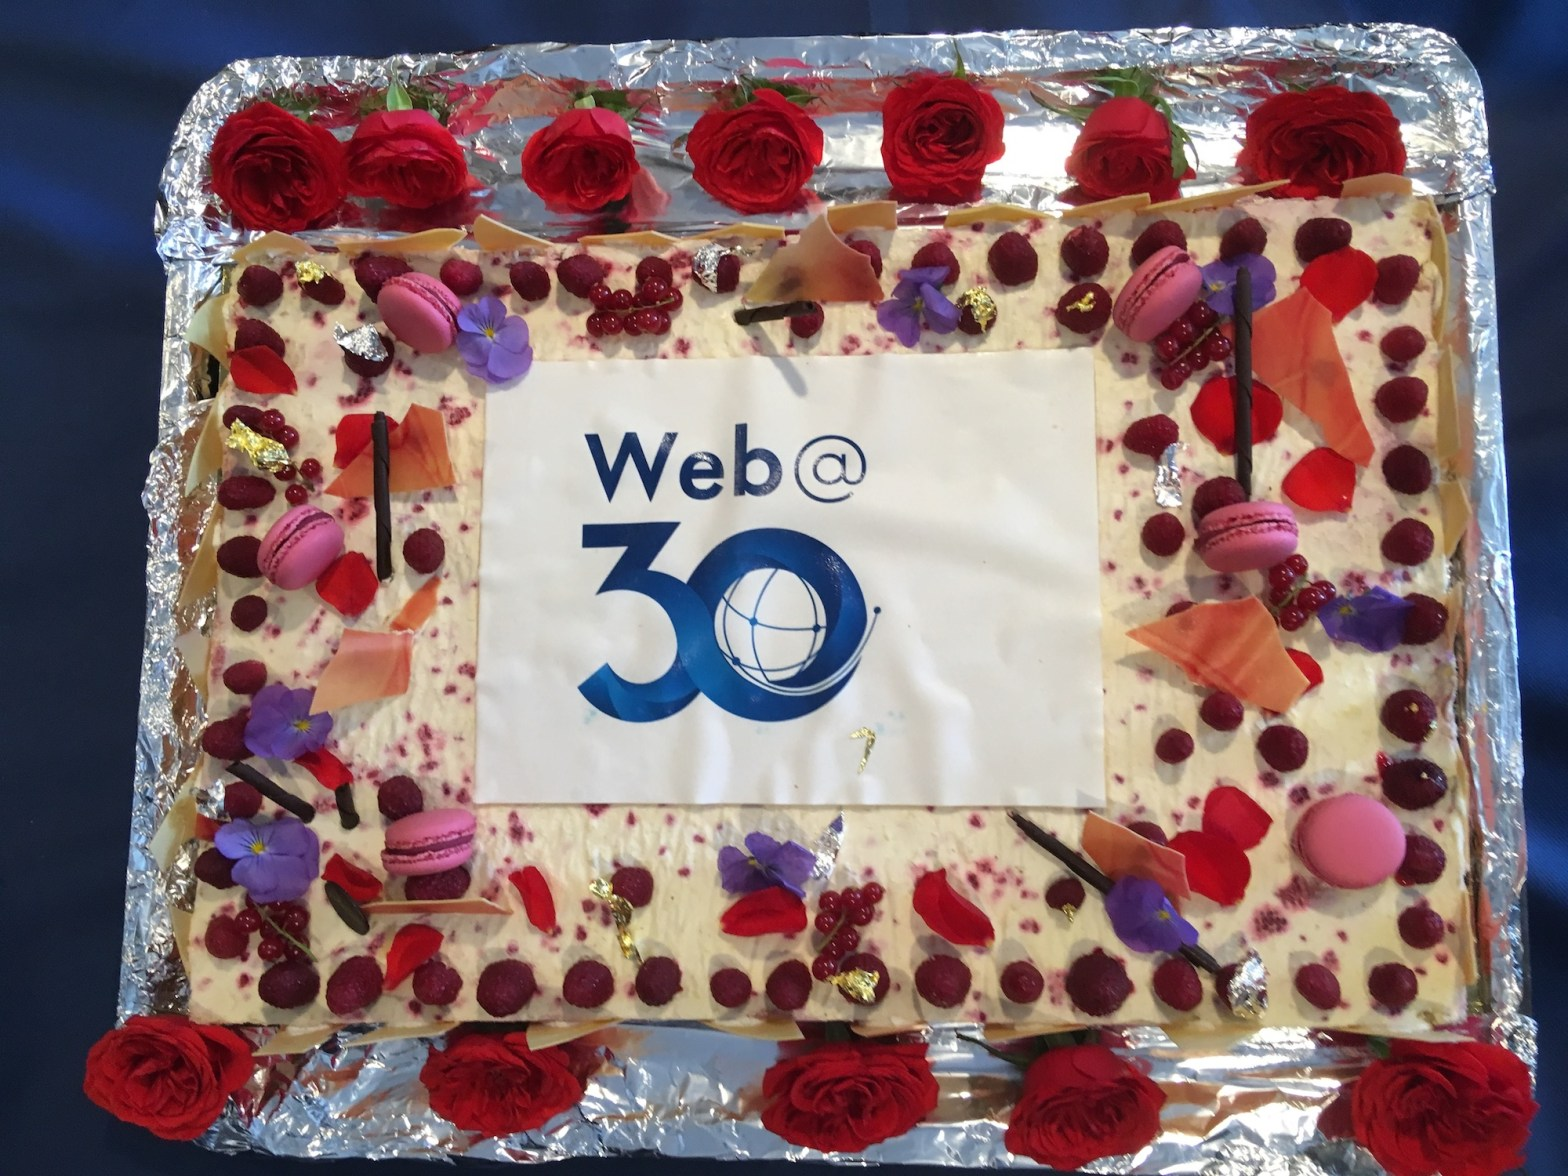 Cake for the Web @ 30